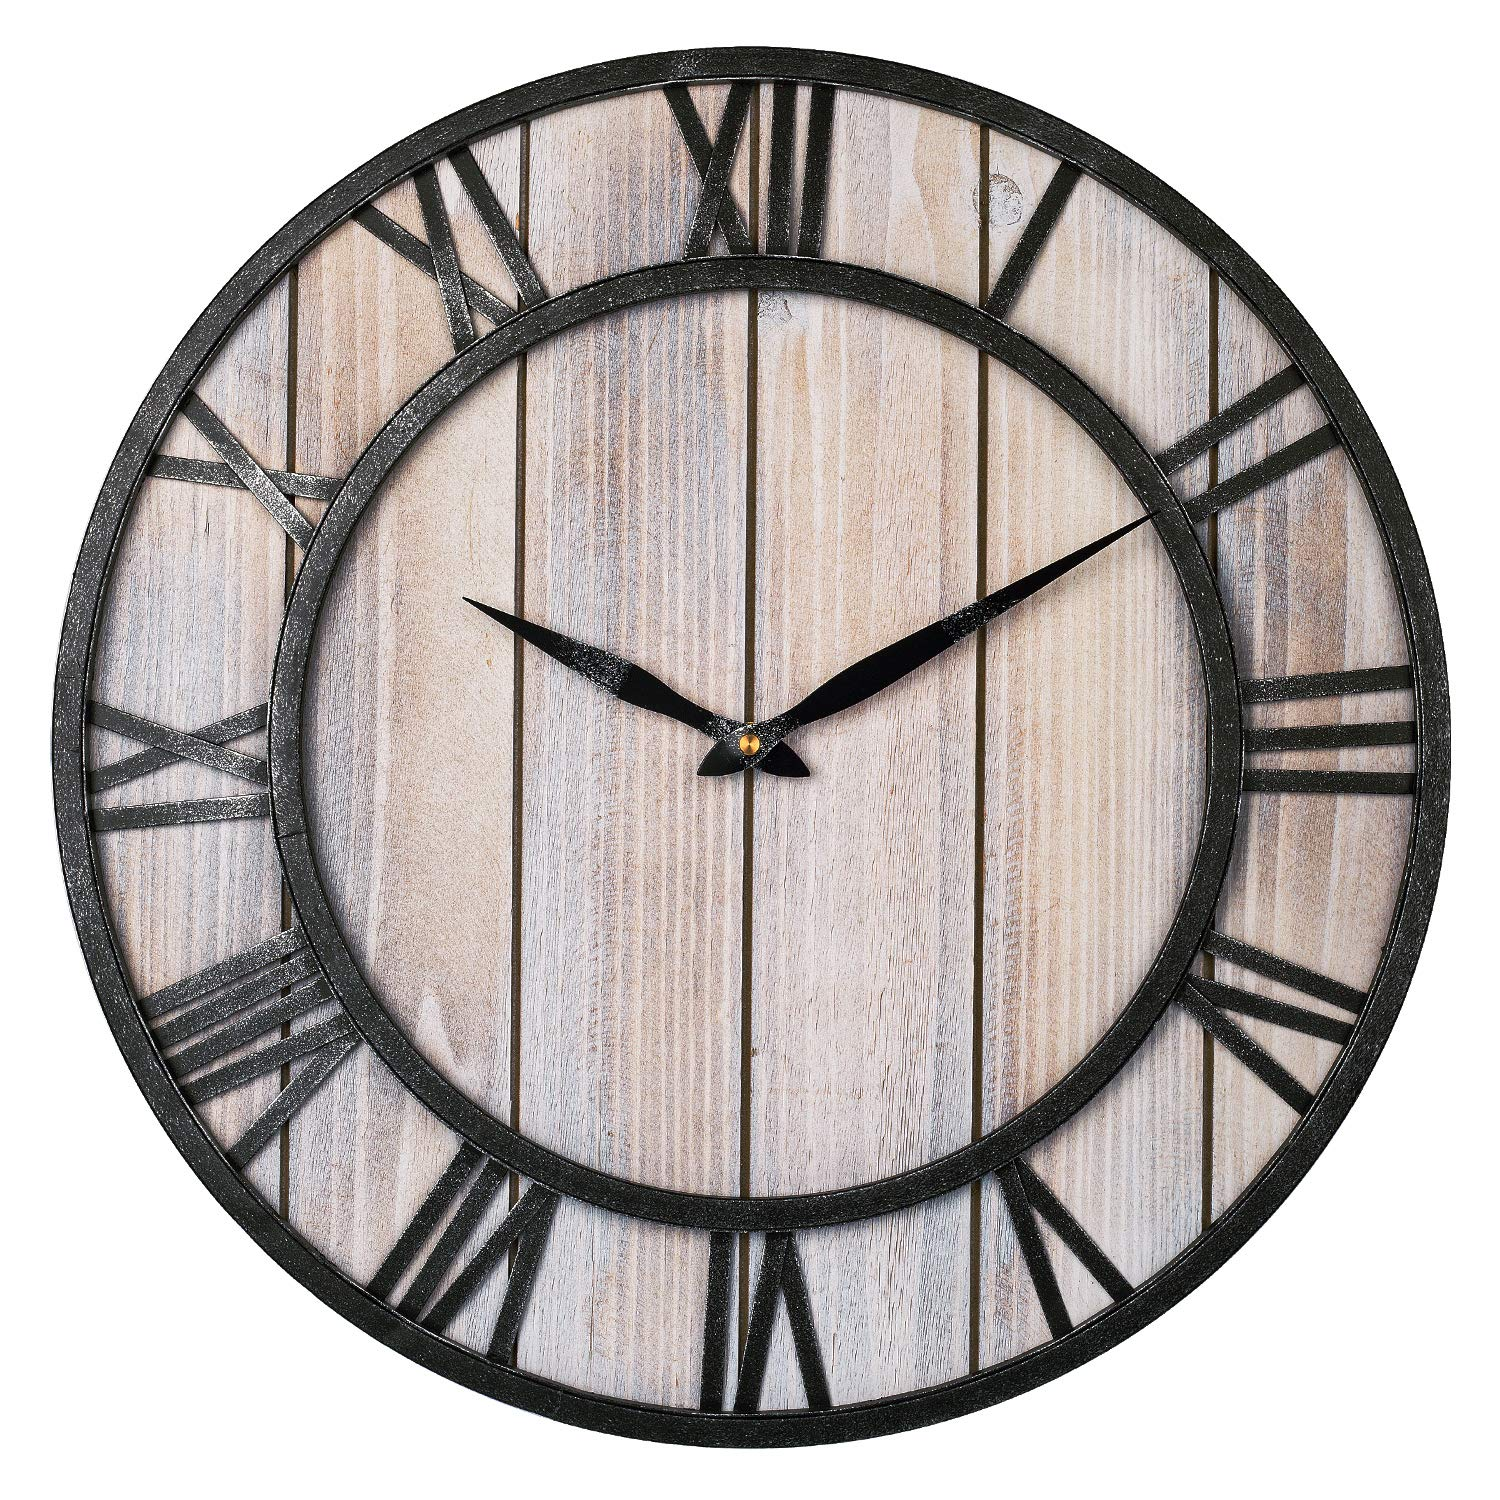 Large Wall Clock Vintage Wooden Farmhouse Decorative Wall Clock With Metal Frame Roman Numeral Silent Battery Operated Buy Online In Aruba At Aruba Desertcart Com Productid 157100001